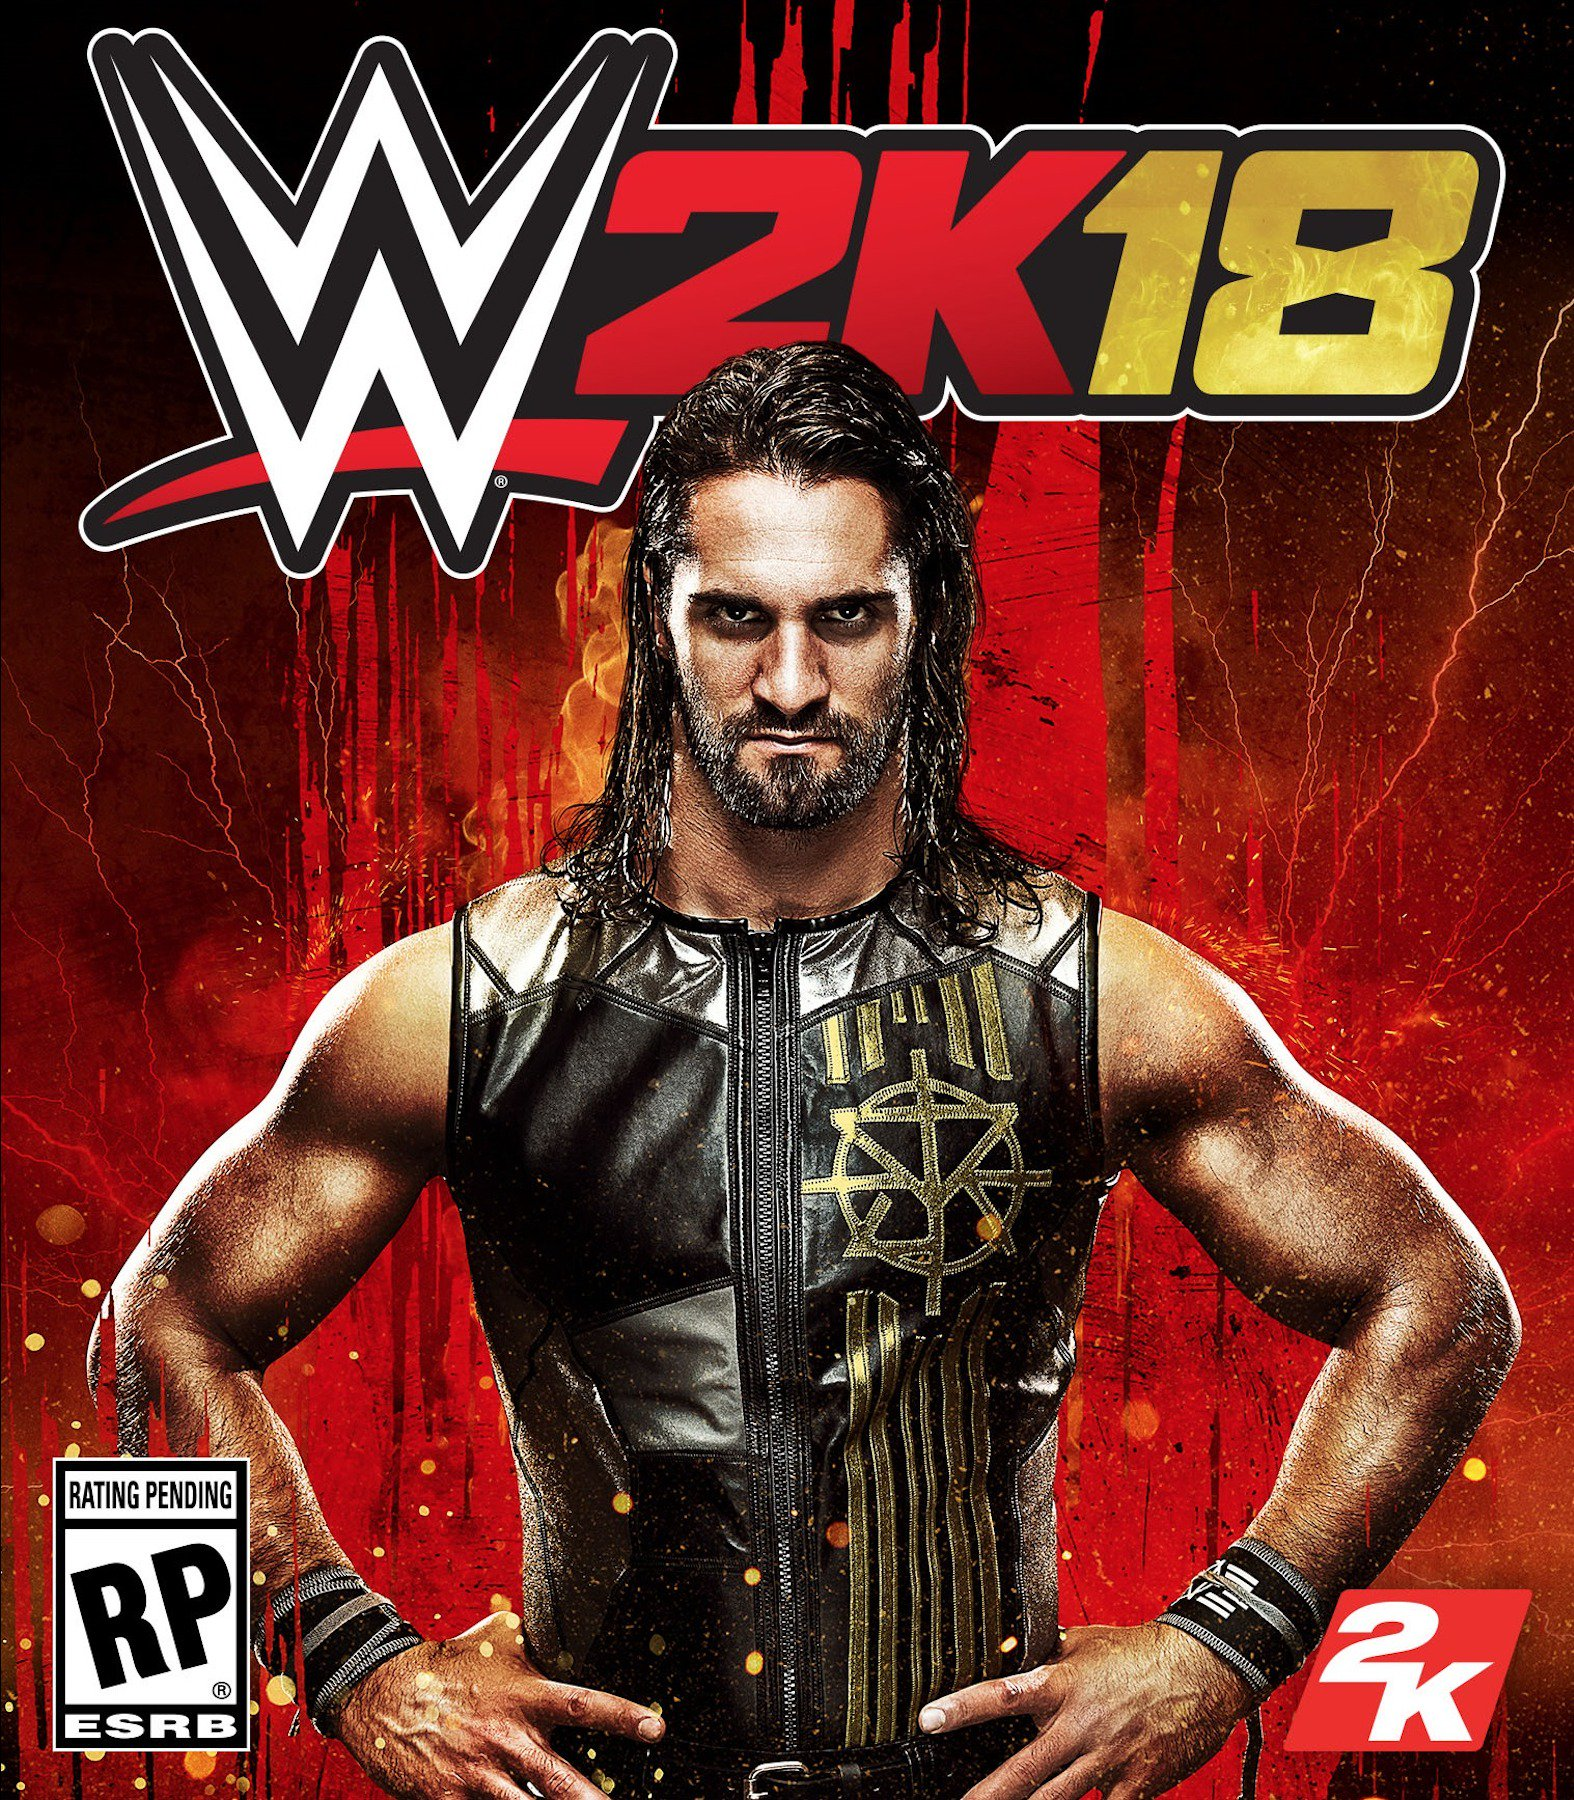 On the cover of WWE 2K18 ... the King Slayer. https://t.co/nYMrG1mjBx